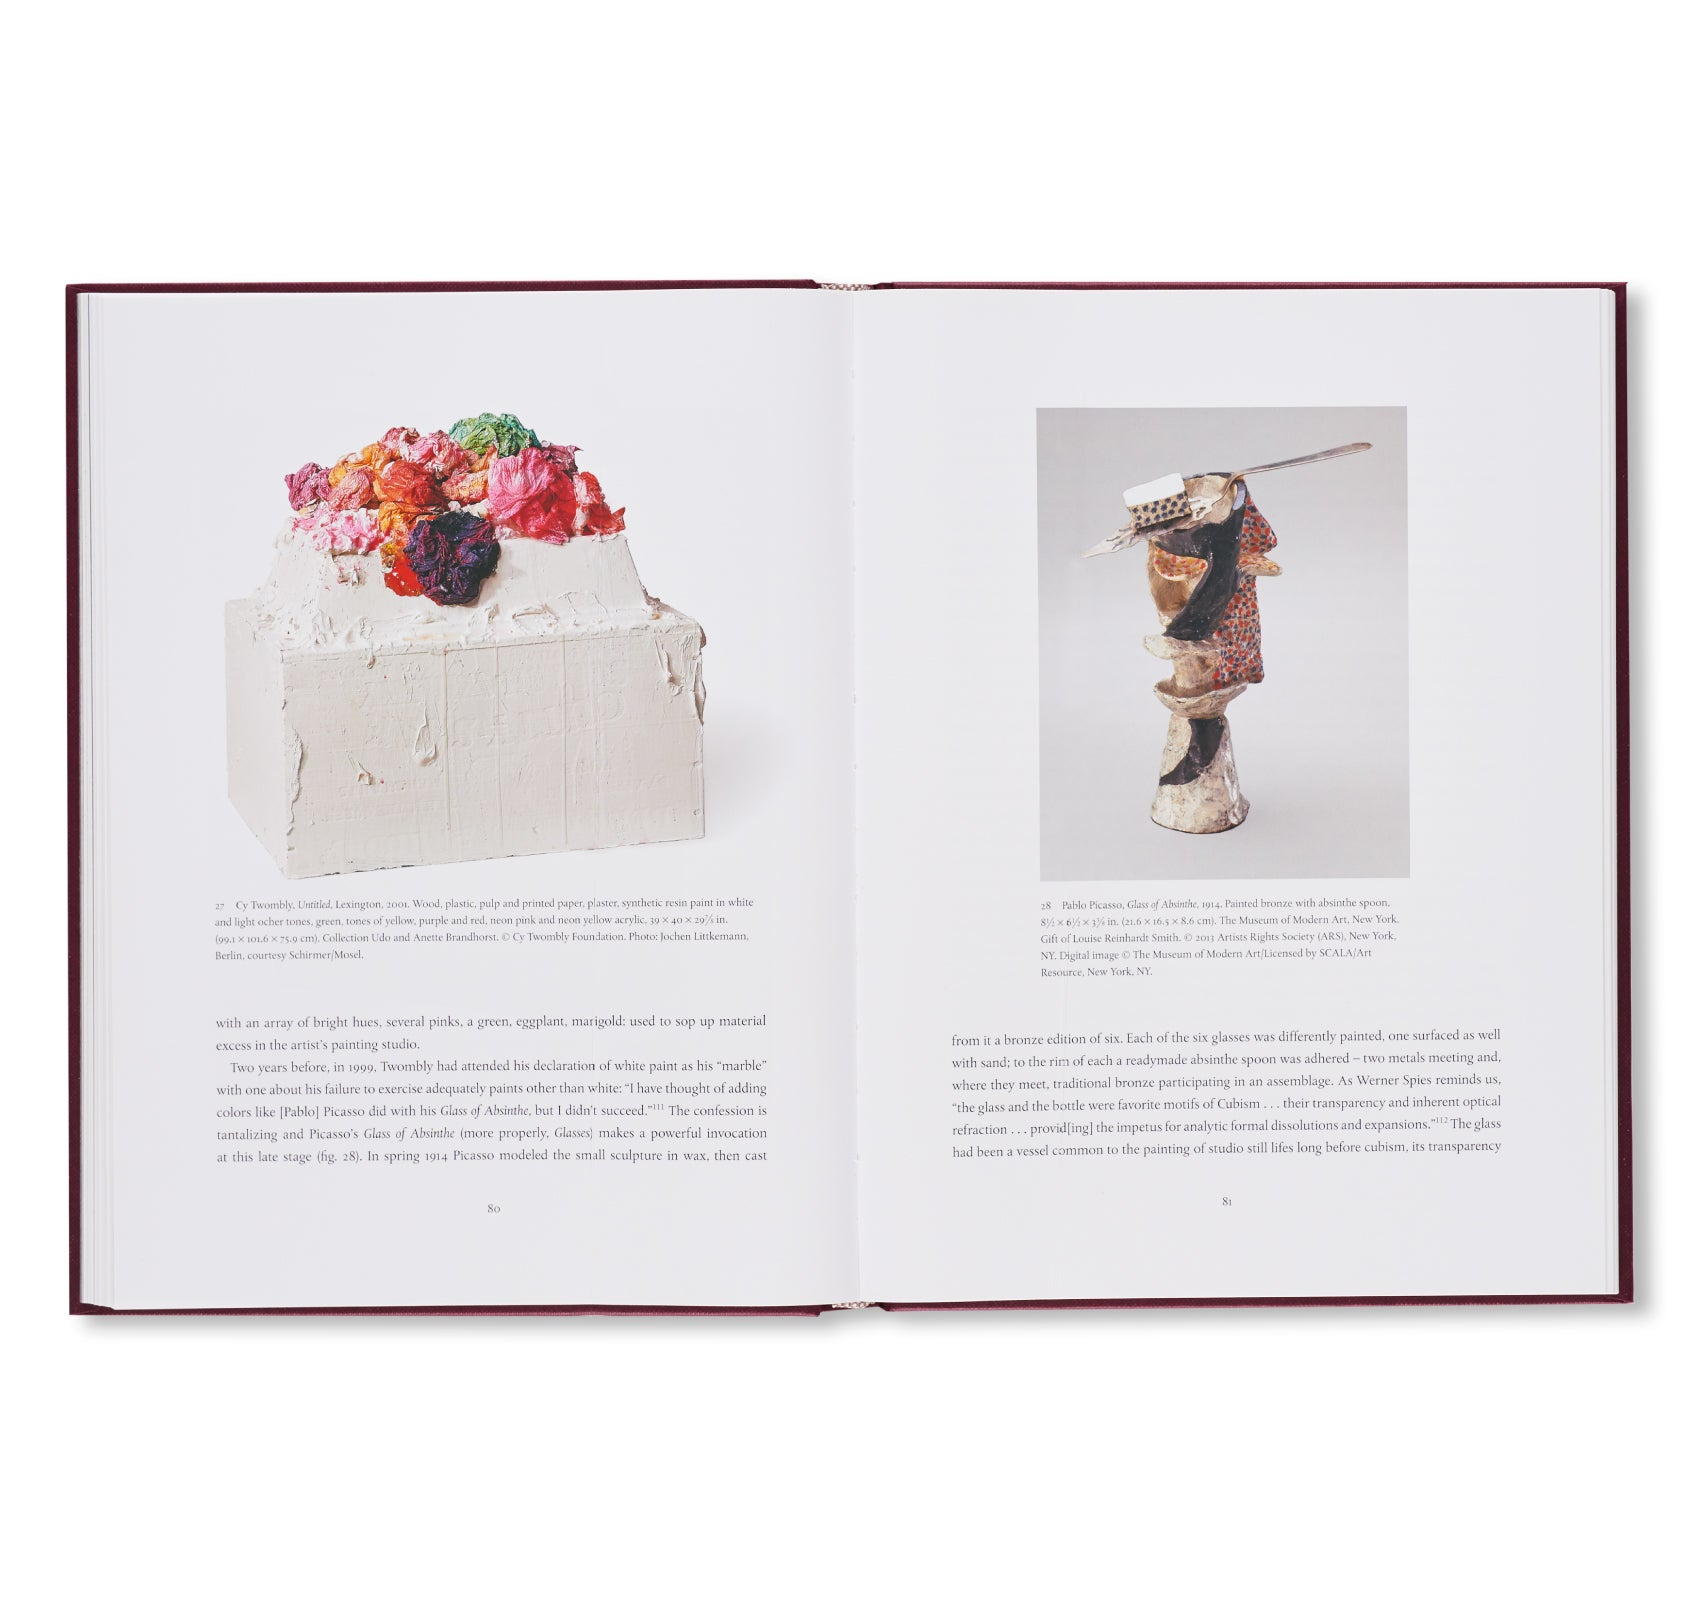 CY TWOMBLY'S THINGS by Kate Nesin